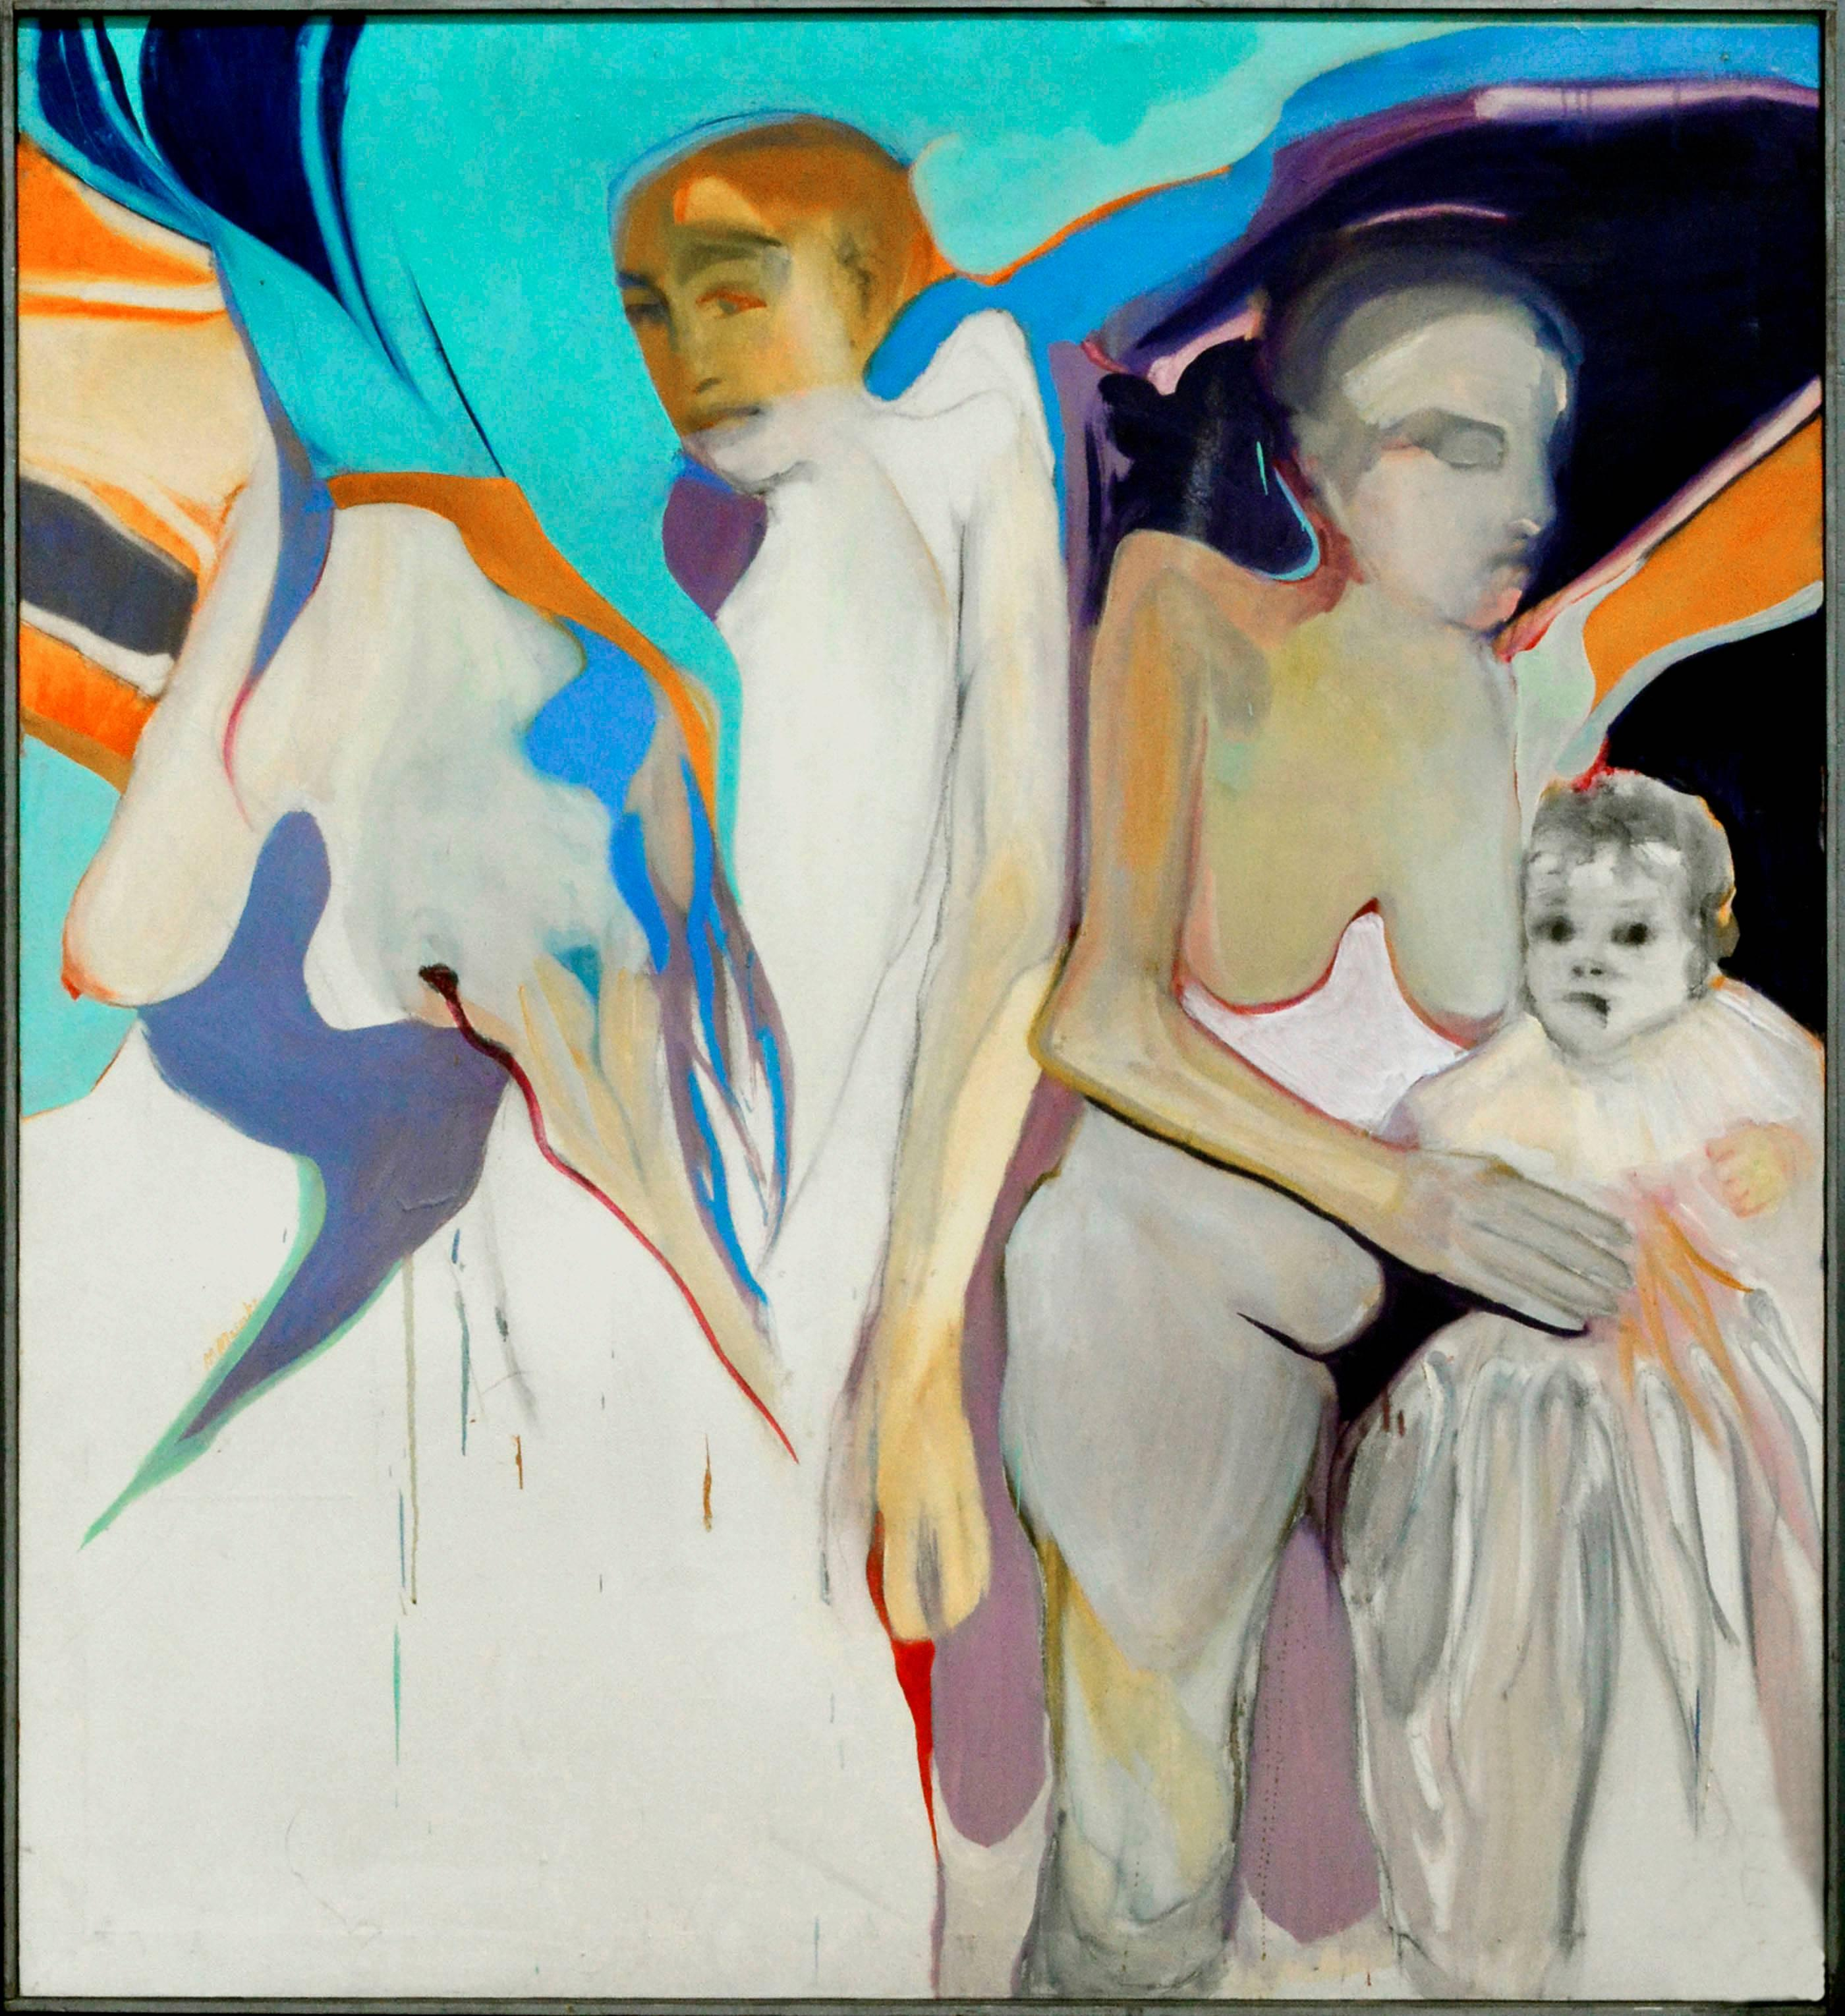 Family Abstract Figurative